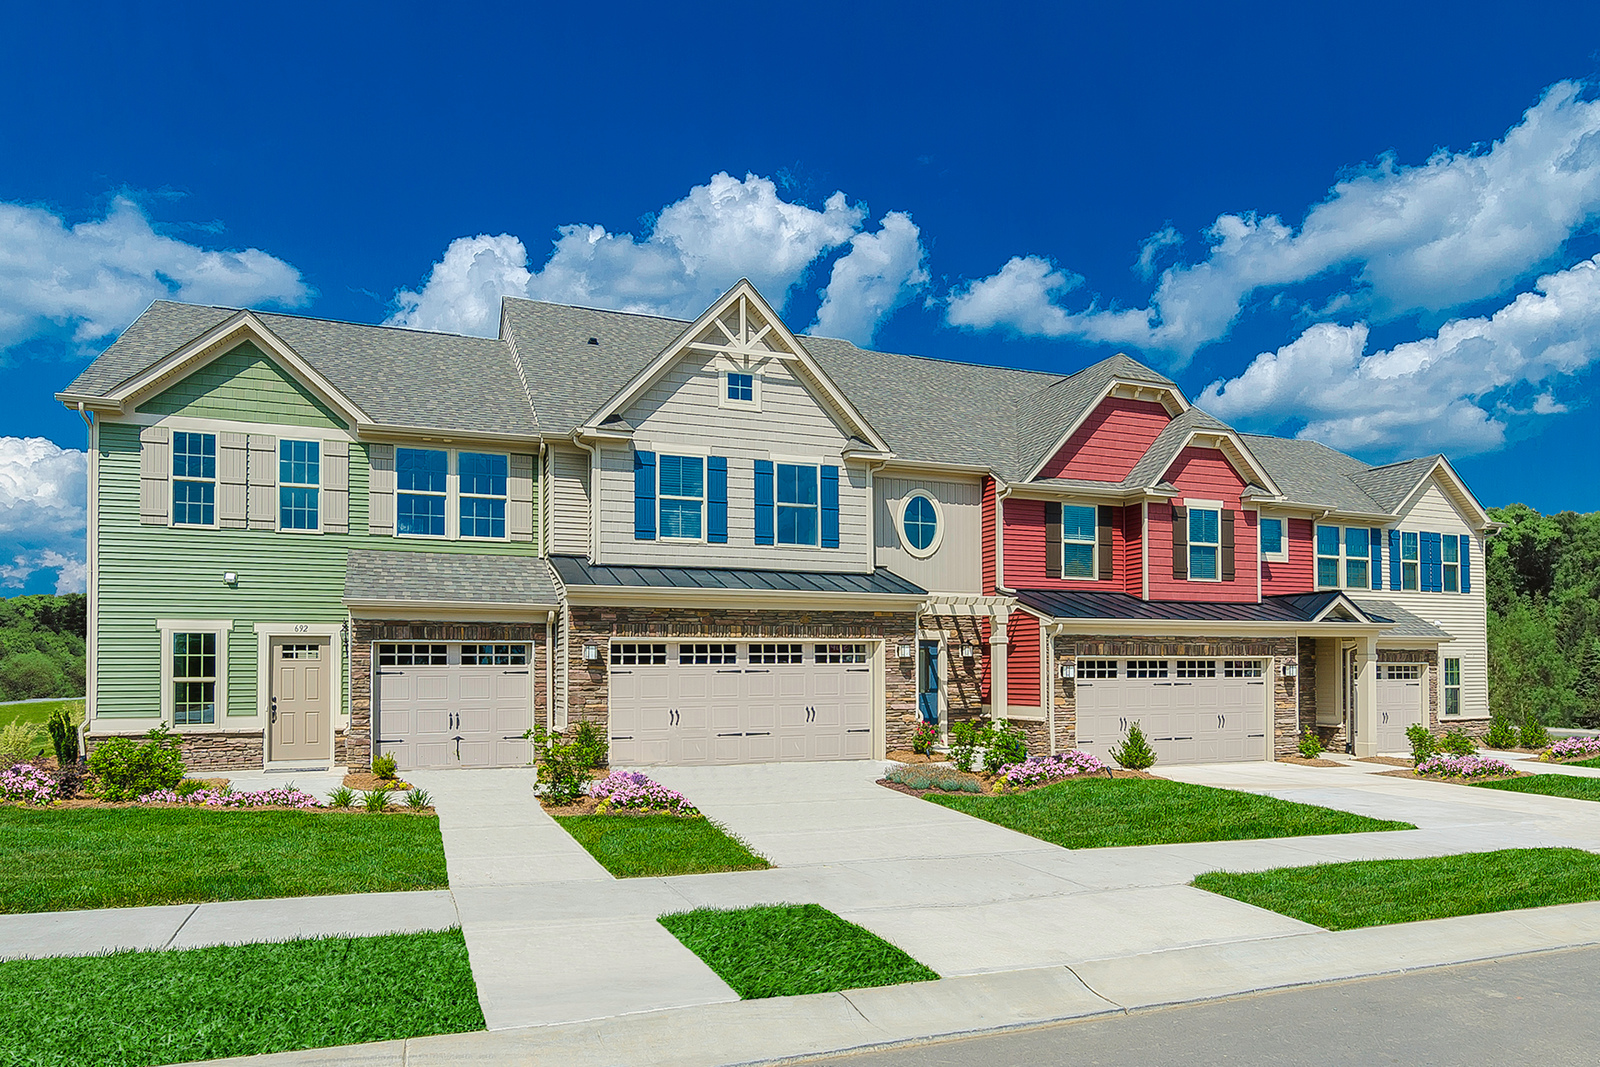 New Homes For Sale At Edison Square Townhomes In Concord